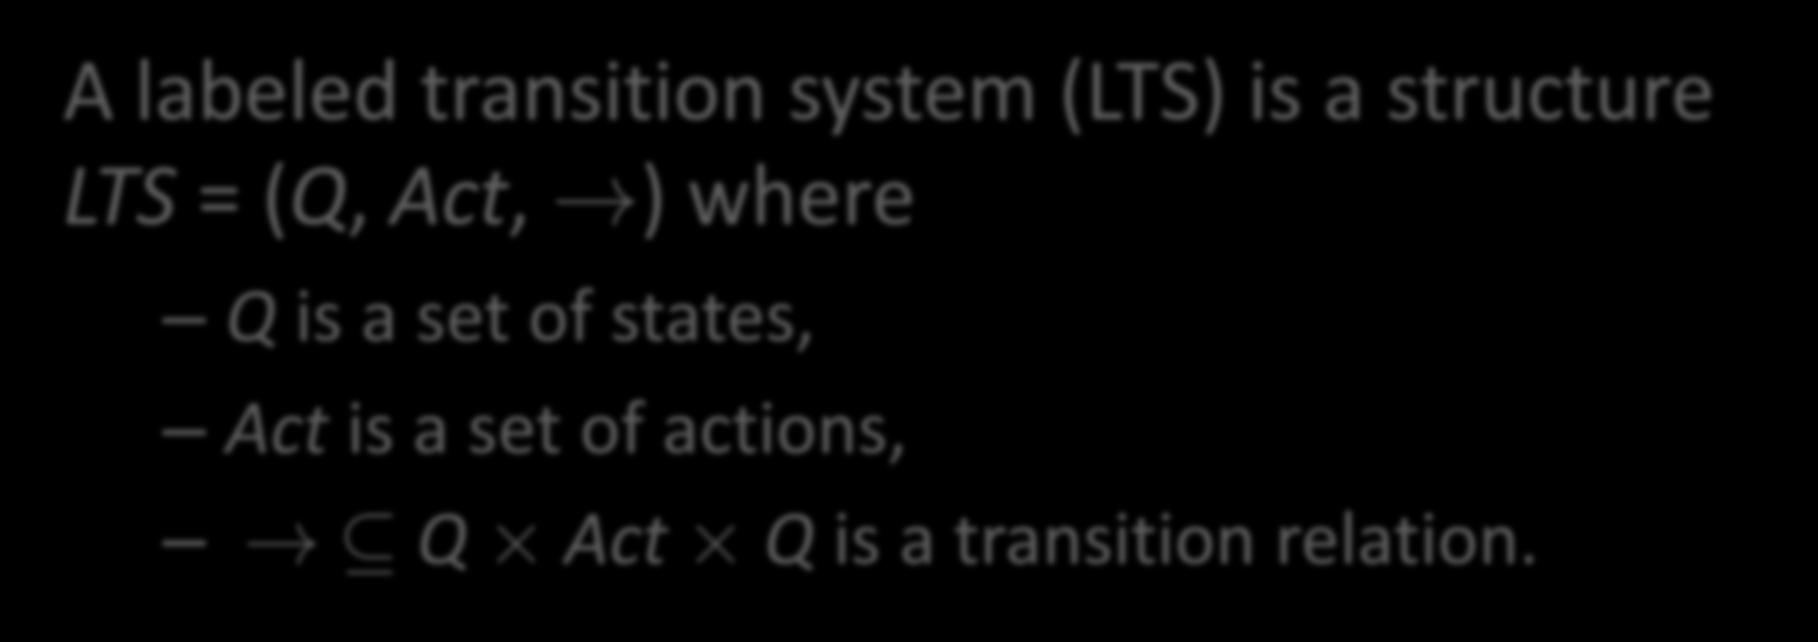 Labeled Transition Systems A labeled transition system (LTS) is a structure LTS = (Q, Act,!